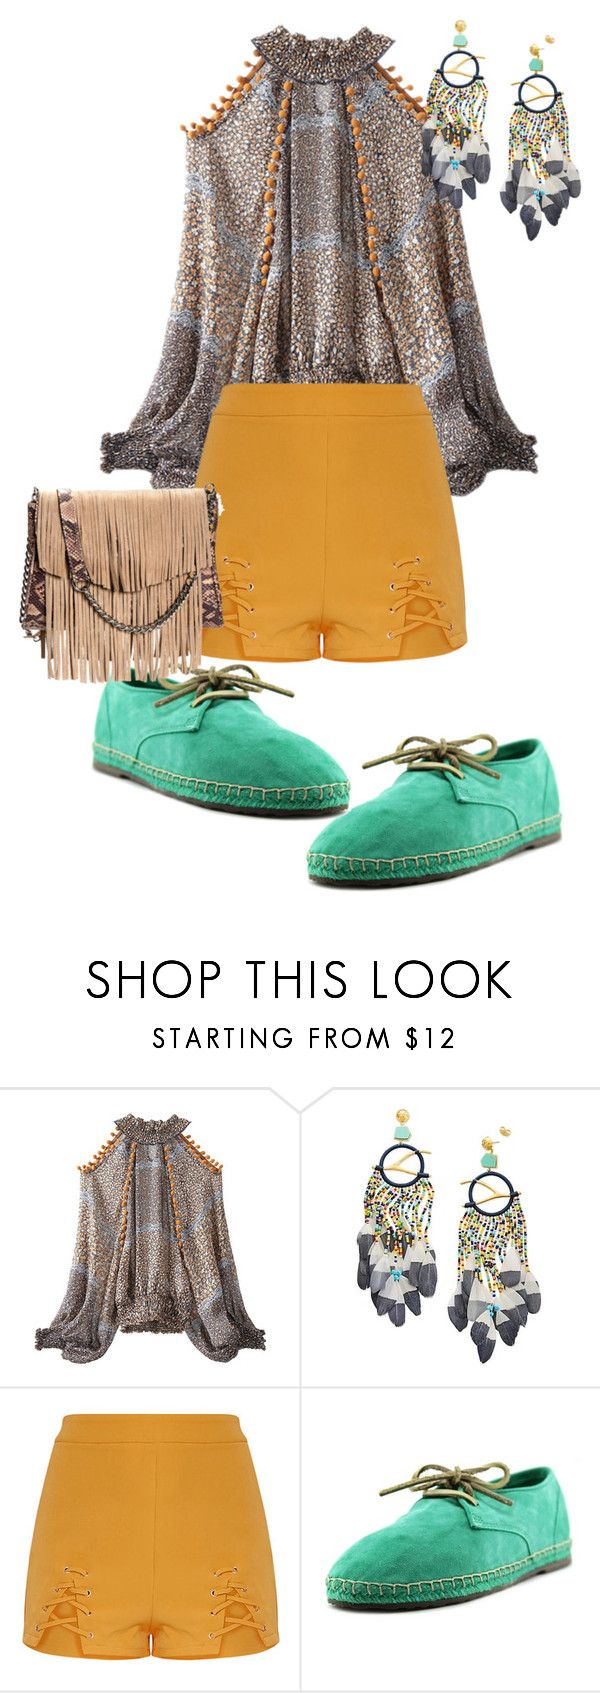 """W/O"" by live-ska ❤ liked on Polyvore featuring Tory Burch and Sebago"